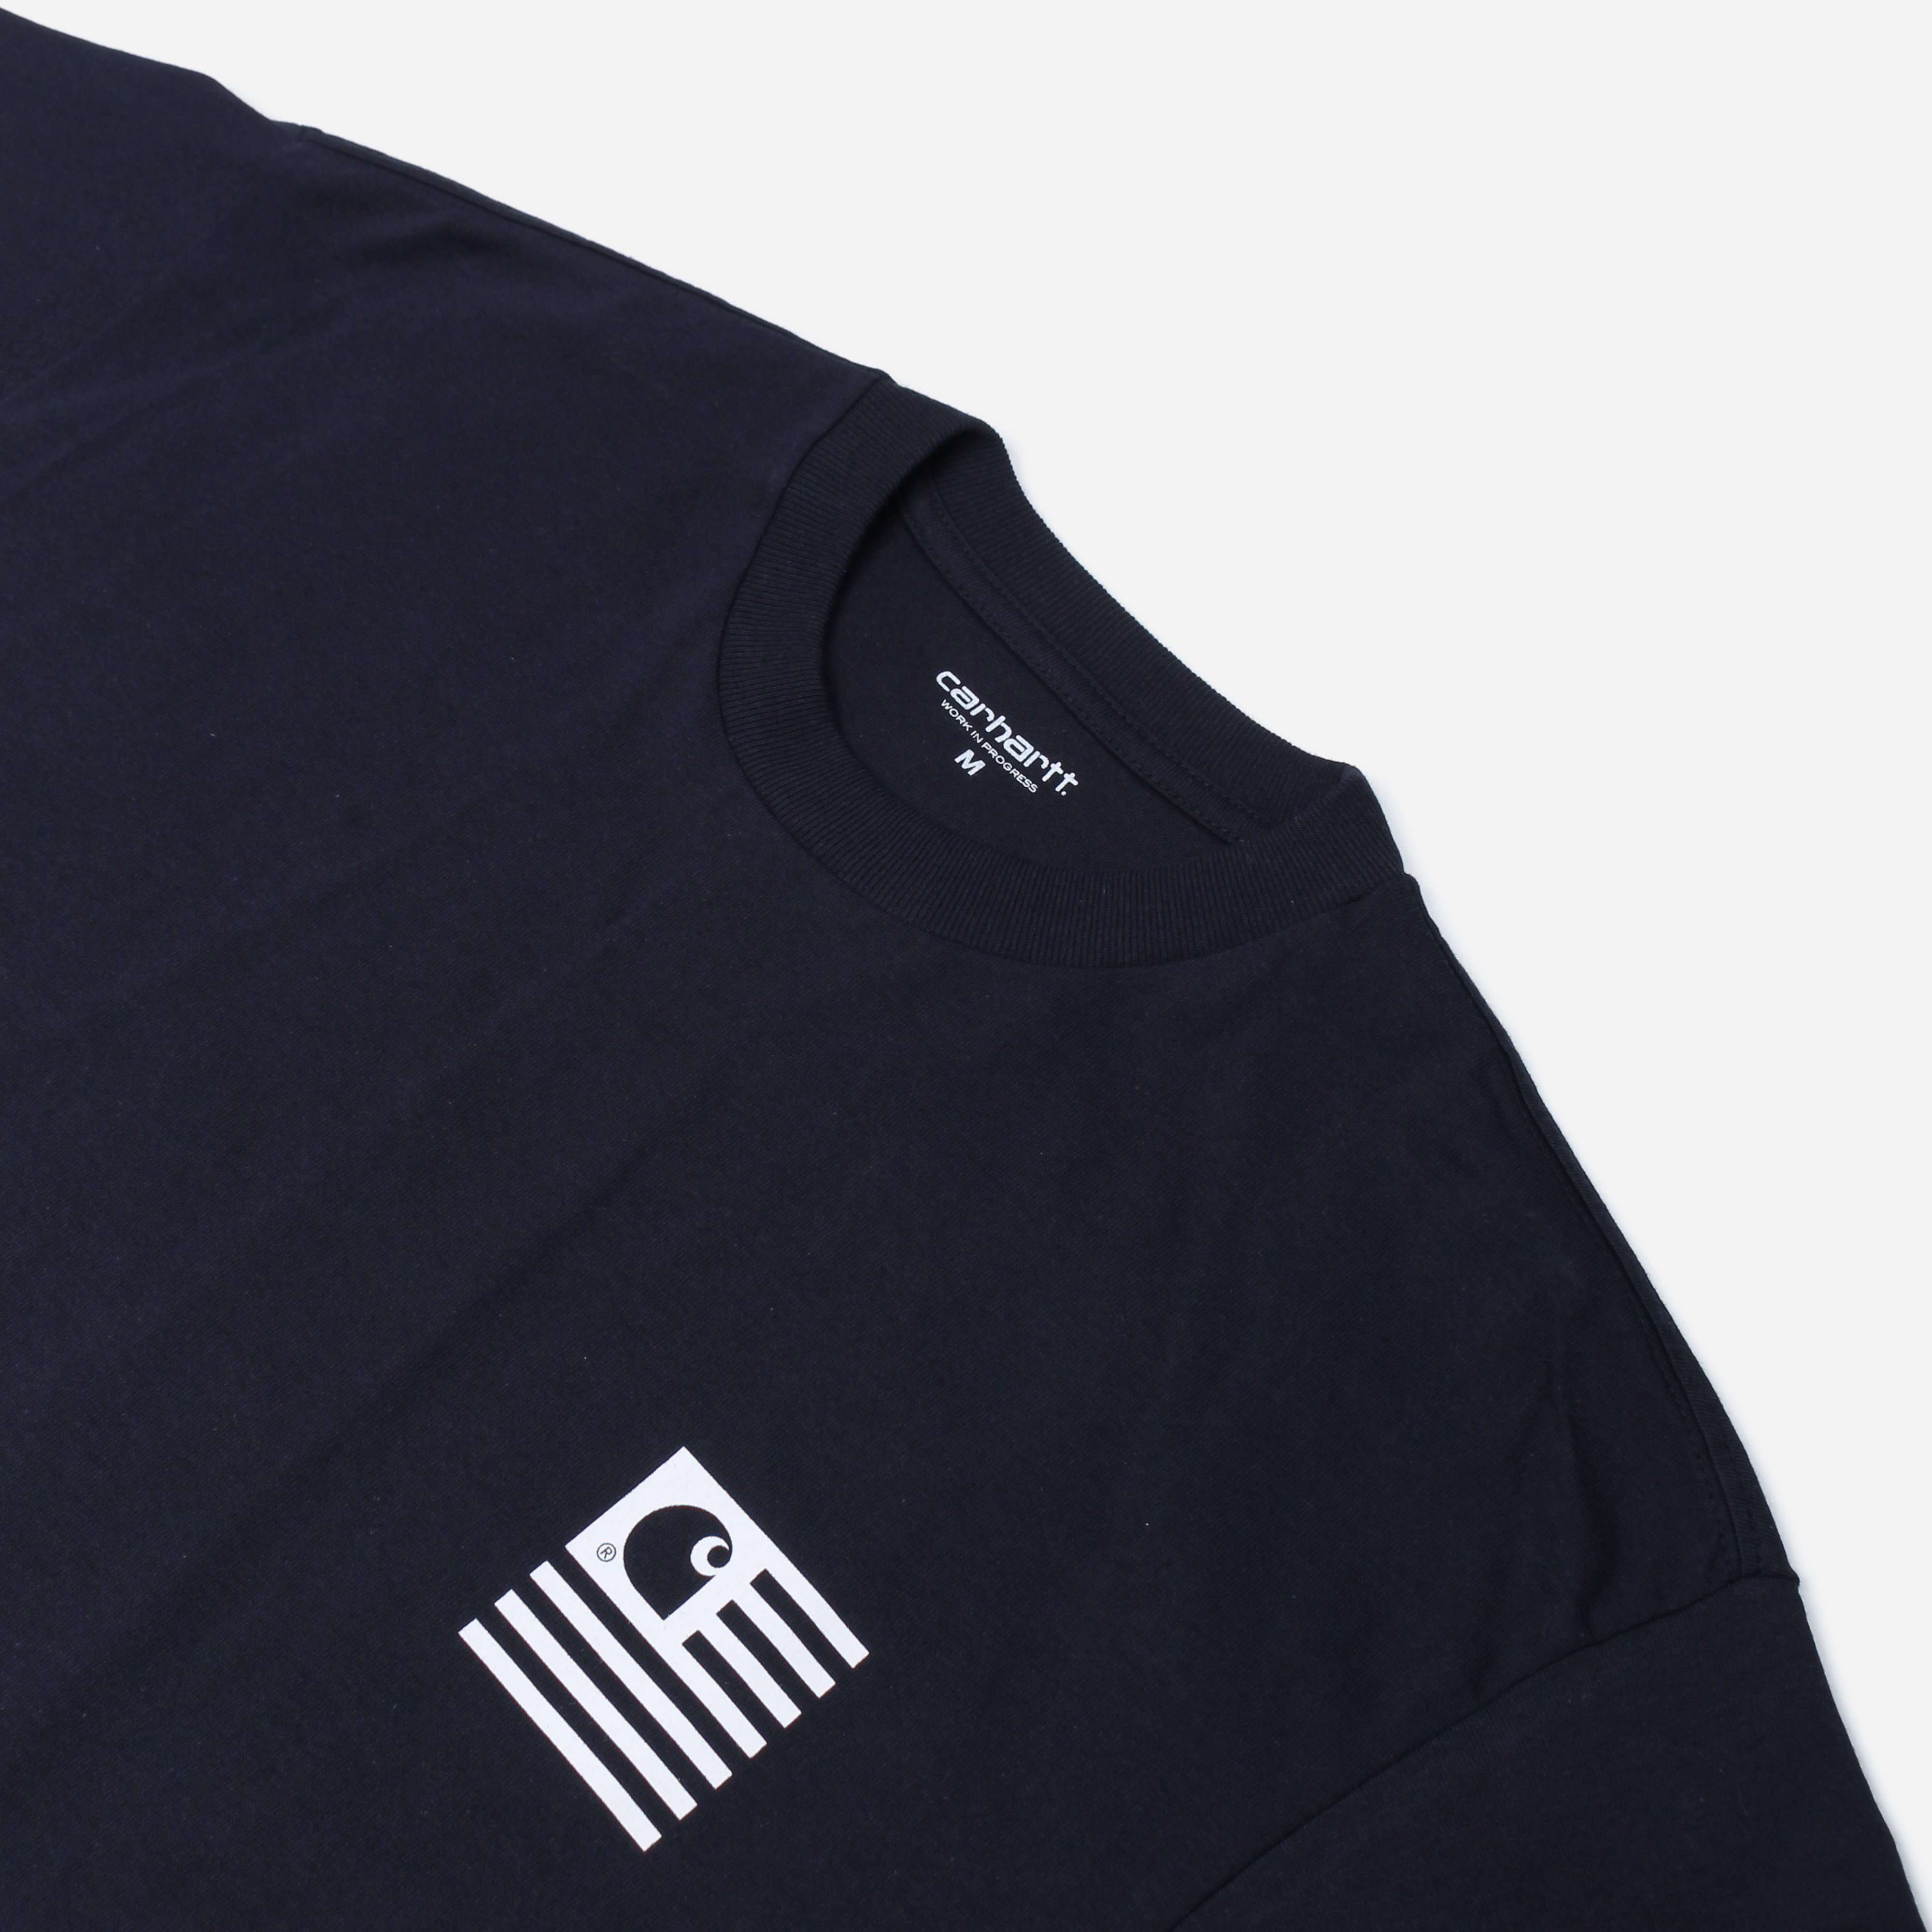 Carhartt WIP State Patch T-Shirt